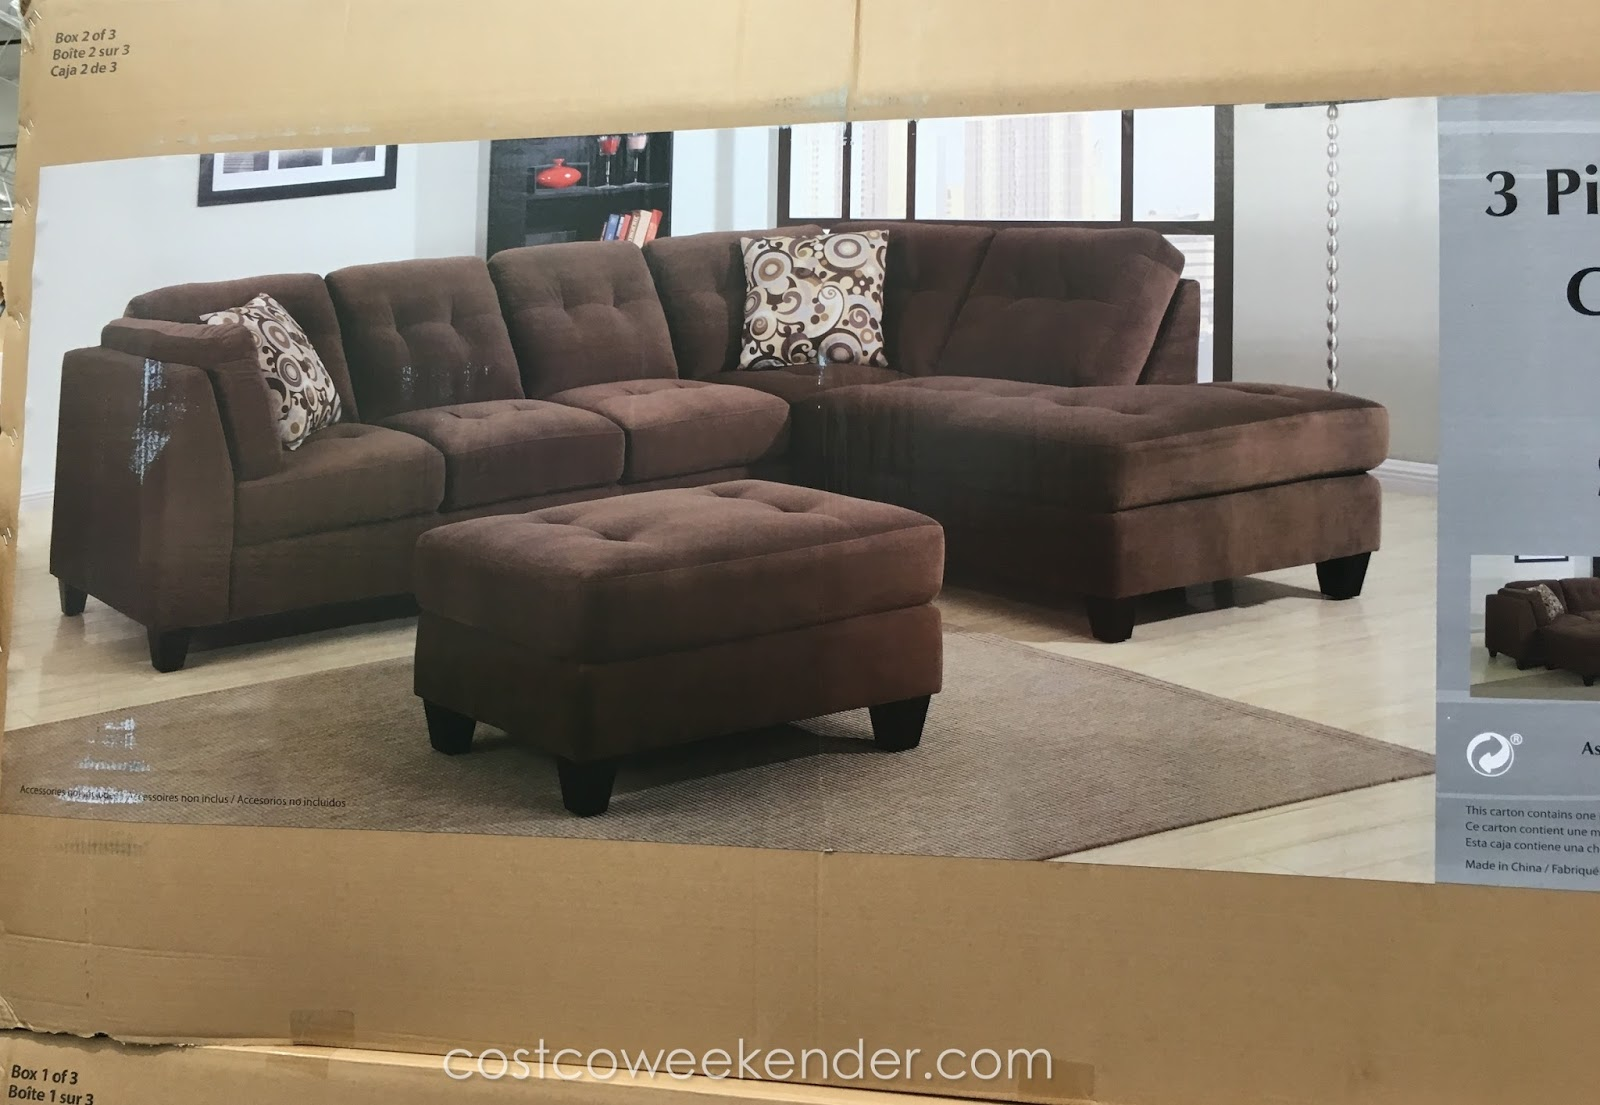 Mstar 3 Piece Modular Fabric Sectional With Ottoman Costco Weekender